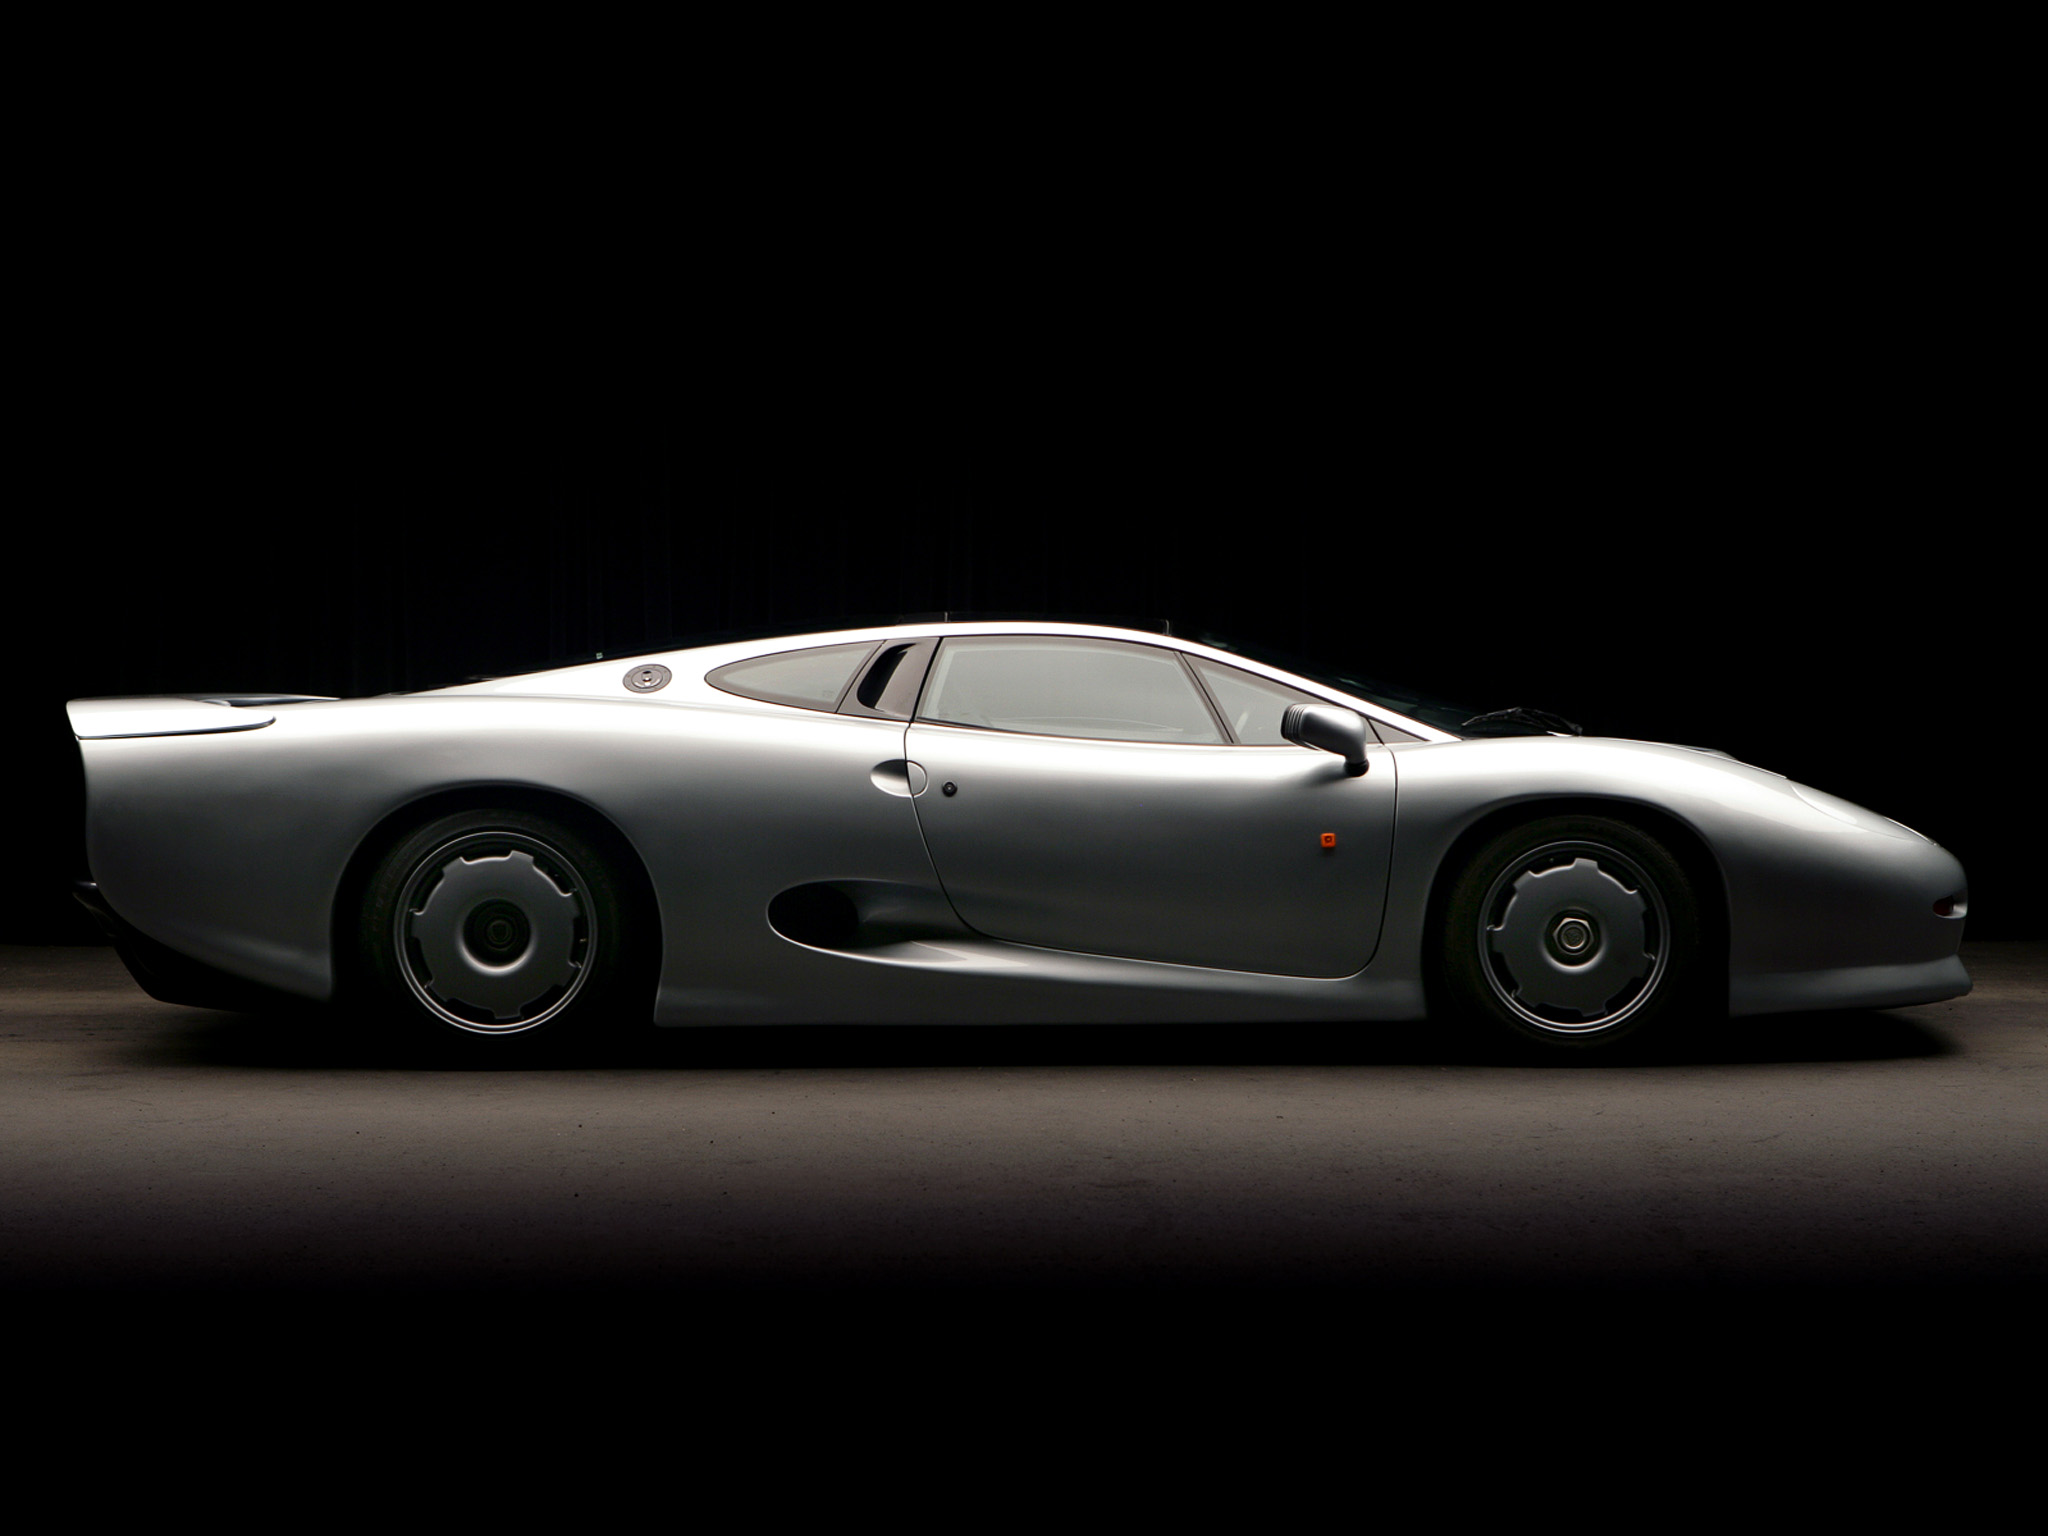 1992 Jaguar XJ220 Supercar G Wallpaper 2048x1536